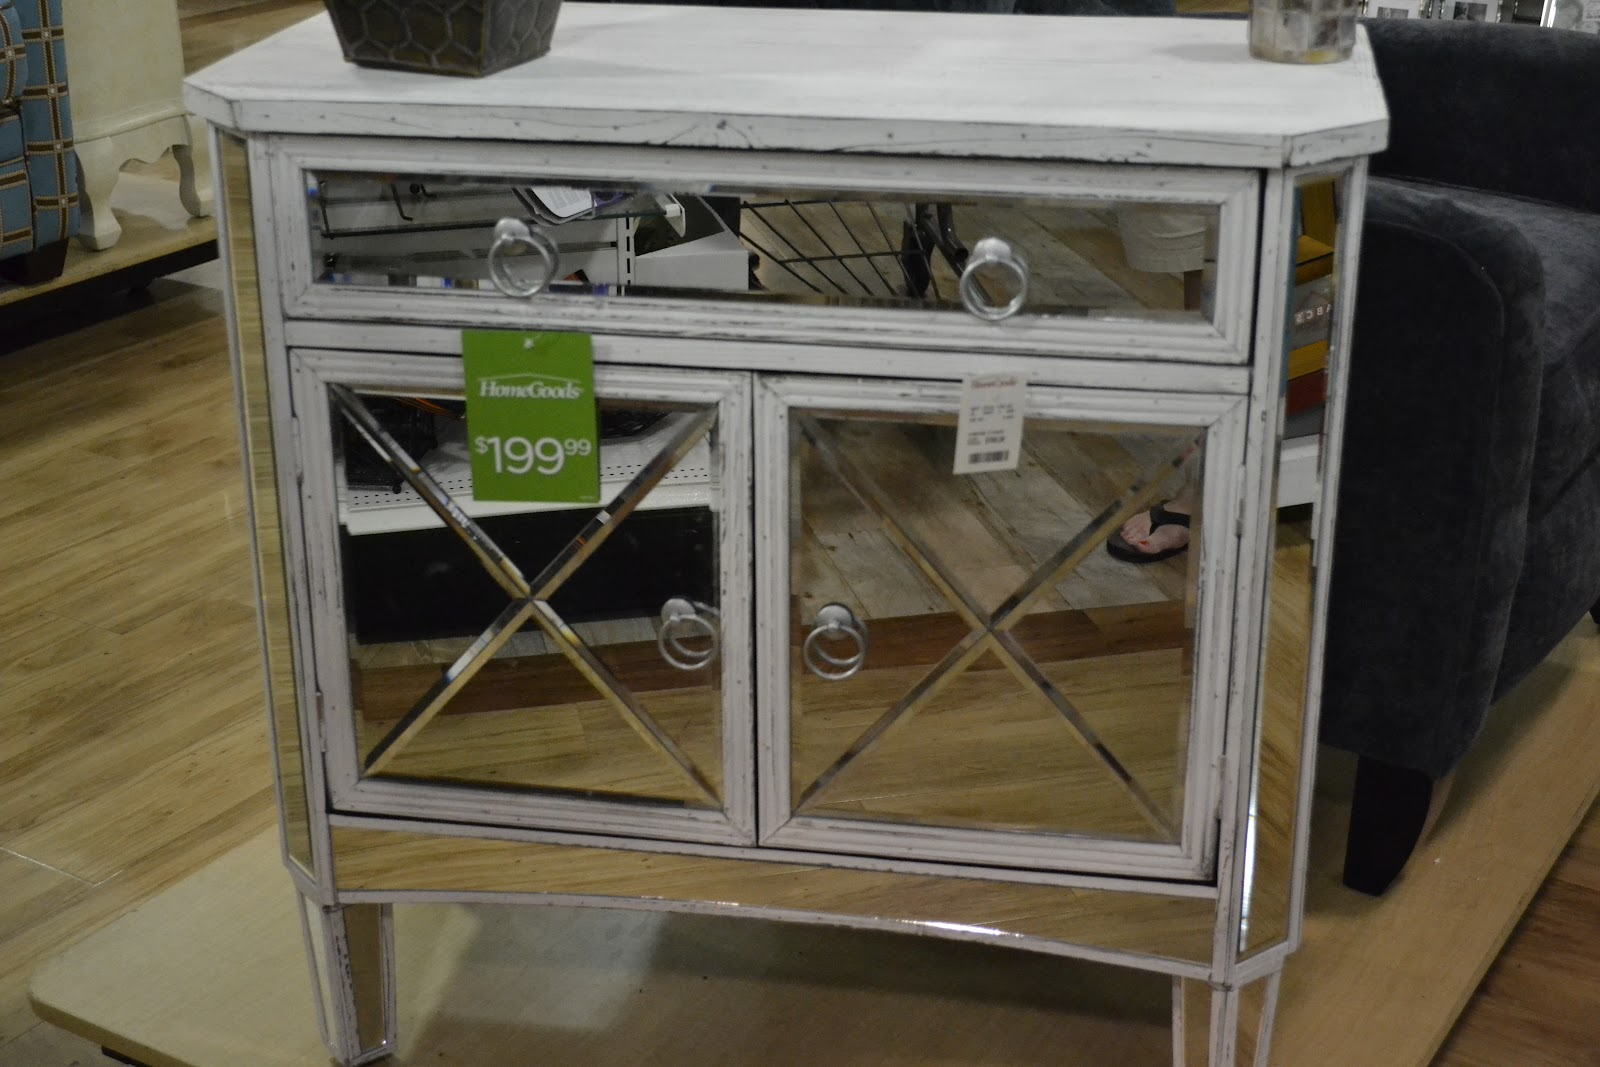 Your Little Birdie: I love me some Home Goods